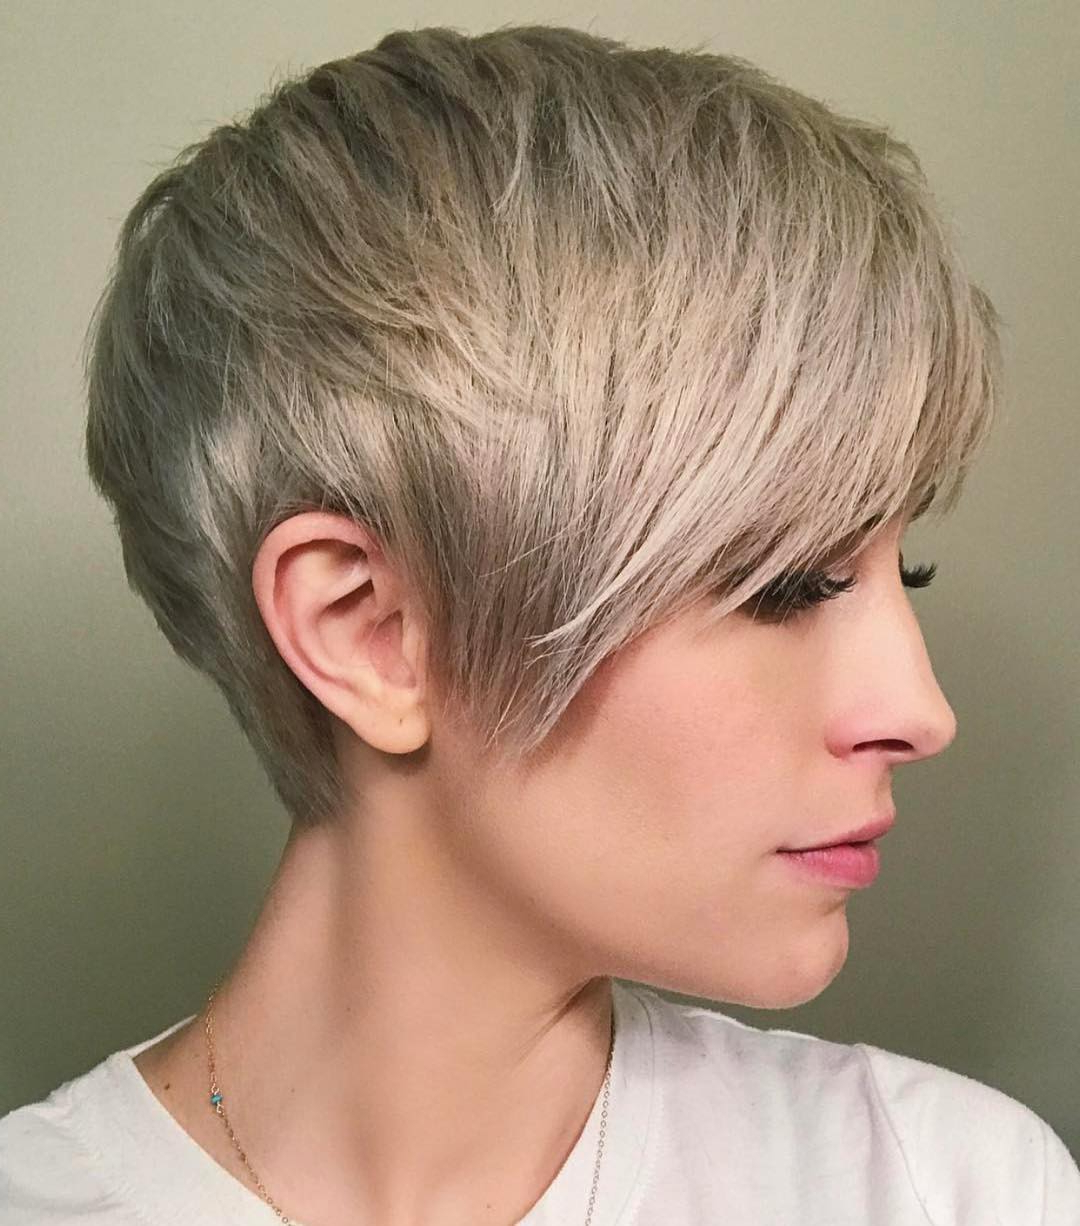 10 Best Short Straight Hairstyle Trends 2019 Pertaining To Long Ash Blonde Pixie Hairstyles For Fine Hair (View 16 of 20)